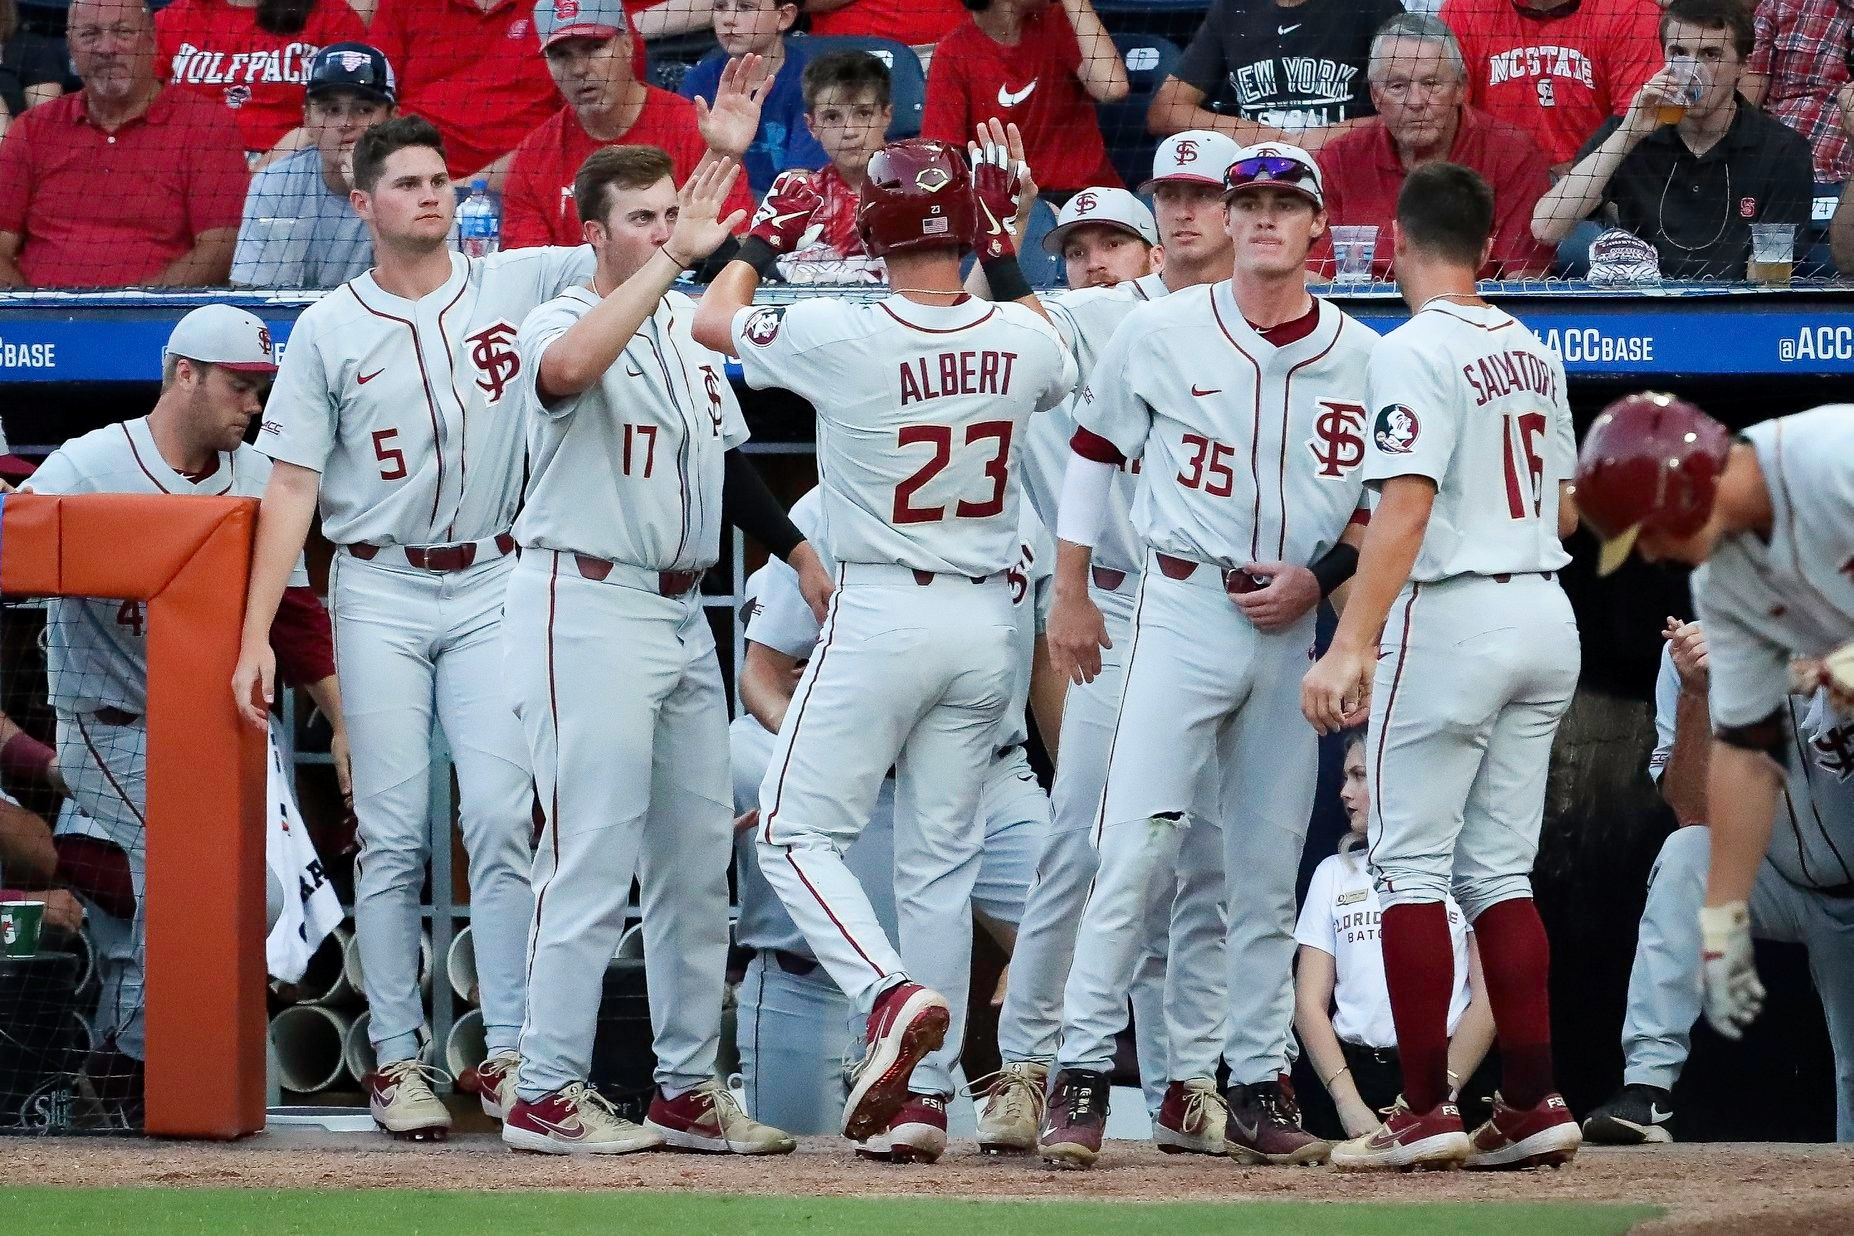 LSU and Florida State To Play 2 Game Neutral Site Series